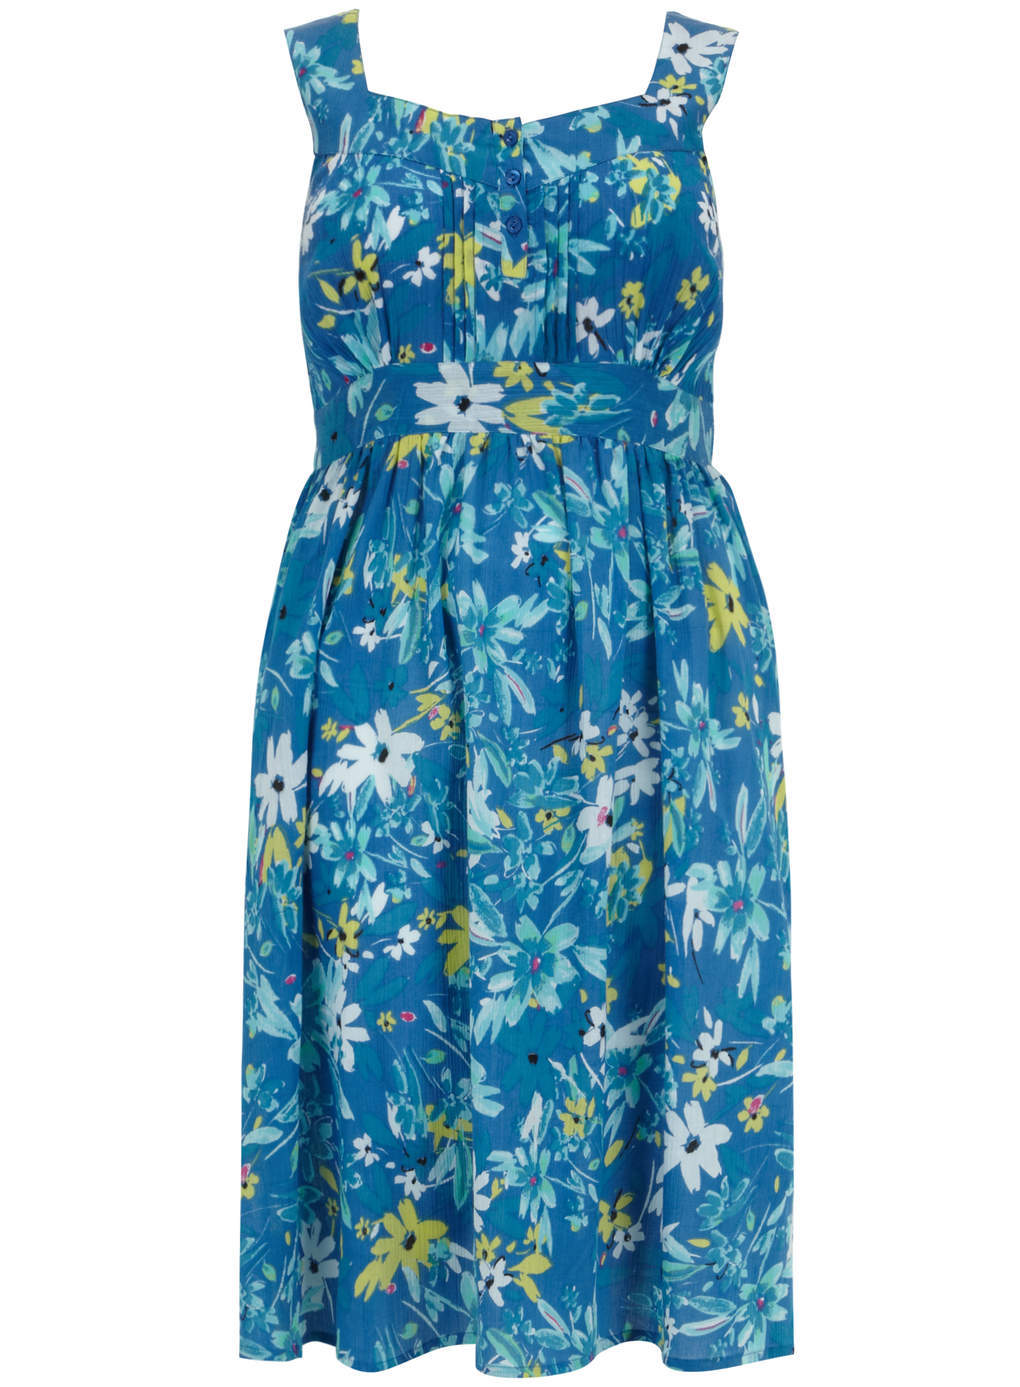 Blue Floral Print Cotton Crinkle Midi Dress - style: shift; neckline: round neck; sleeve style: sleeveless; secondary colour: white; predominant colour: diva blue; occasions: casual, holiday; length: just above the knee; fit: fitted at waist & bust; fibres: cotton - 100%; sleeve length: sleeveless; texture group: cotton feel fabrics; pattern type: fabric; pattern size: big & busy; pattern: florals; season: s/s 2014